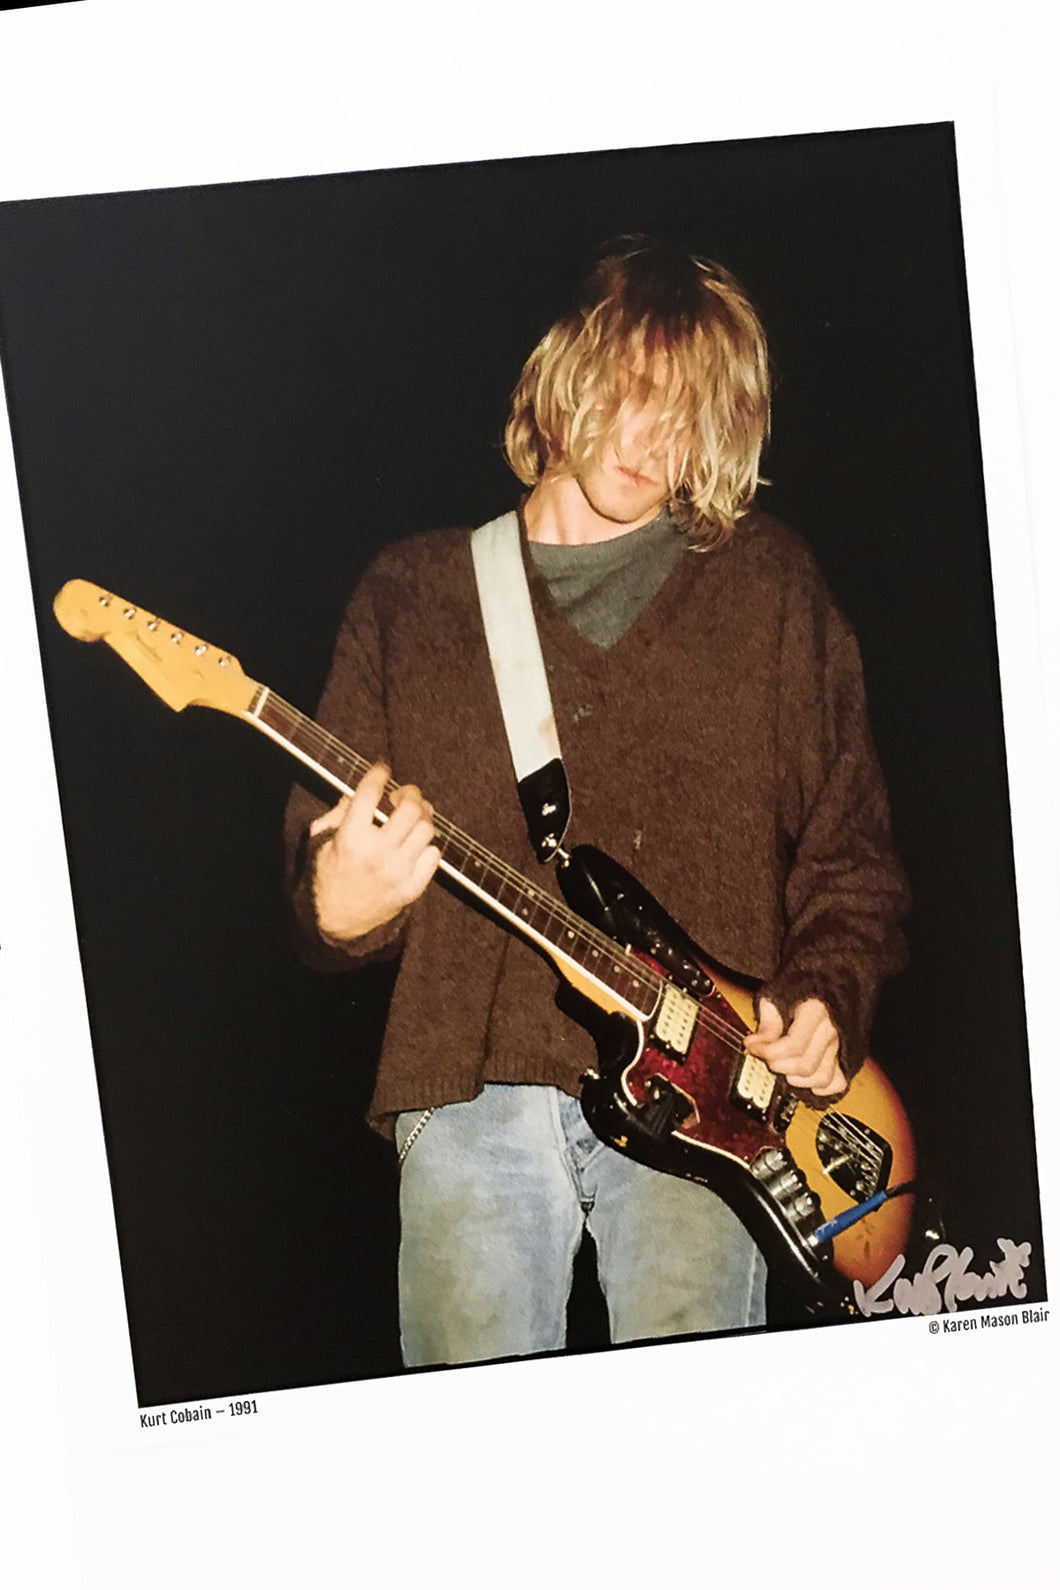 Kurt Cobain Lithium Nirvana photo 8x10 signed  old school promo - 1991